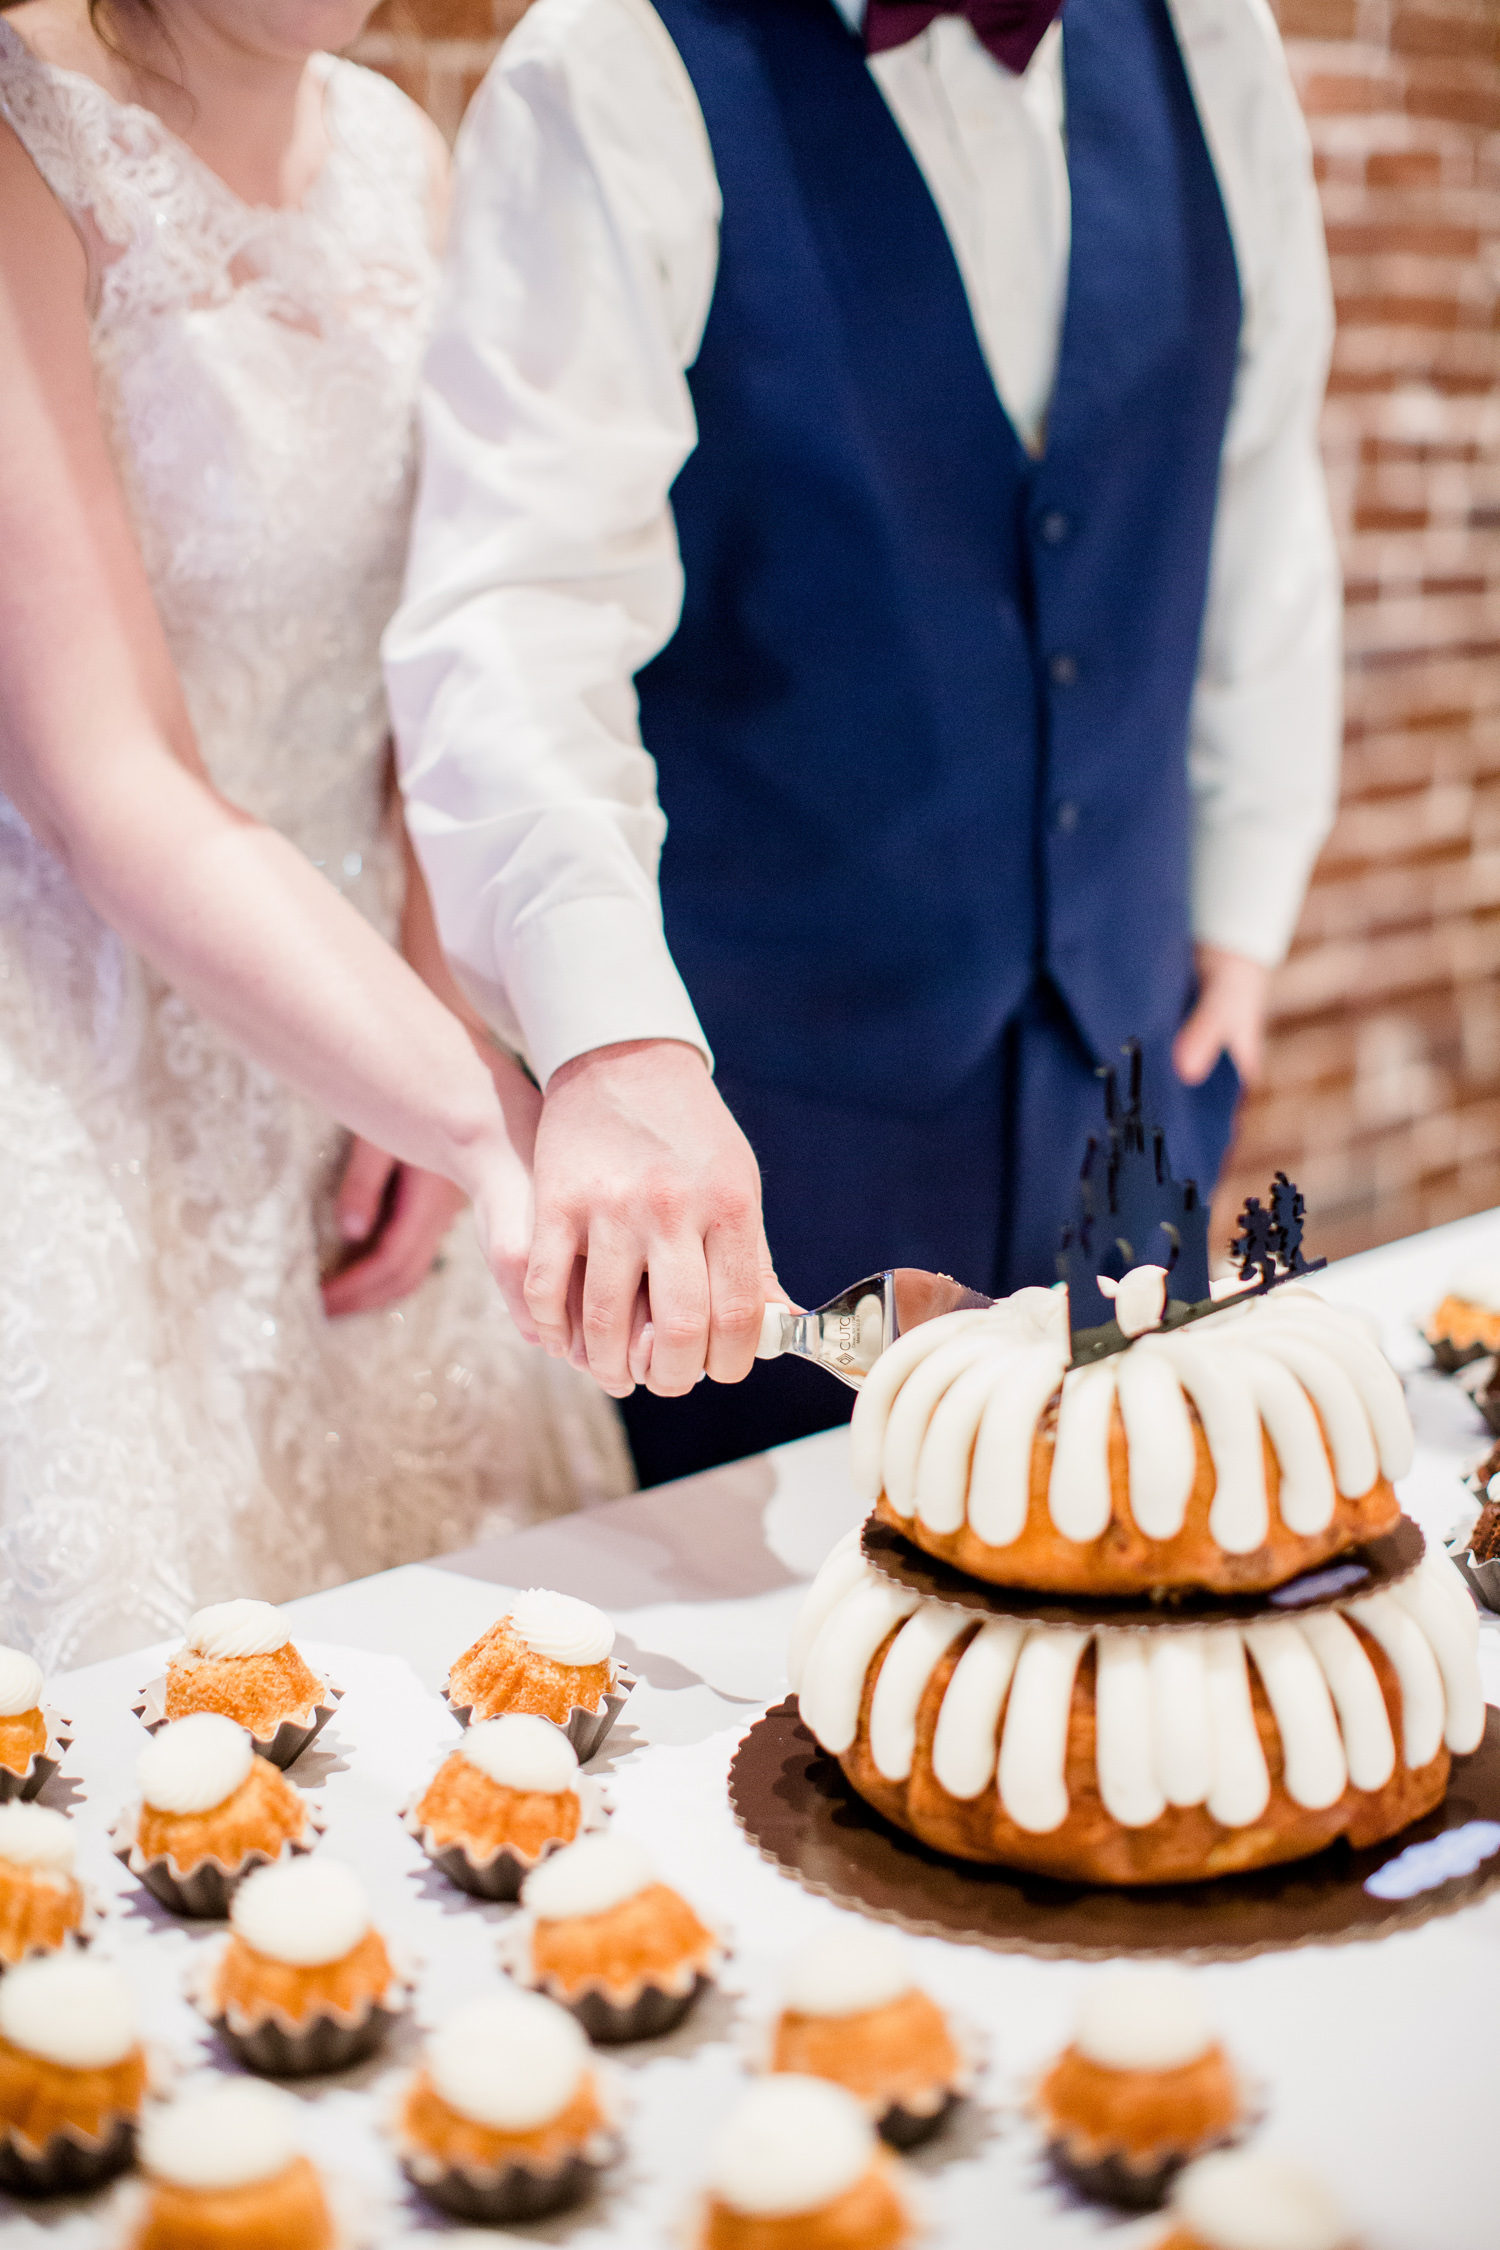 Downtown Knoxville Wedding Venue // Central Avenue Reception // Nothing Bundt Cakes Knoxville // Cutting the Cake